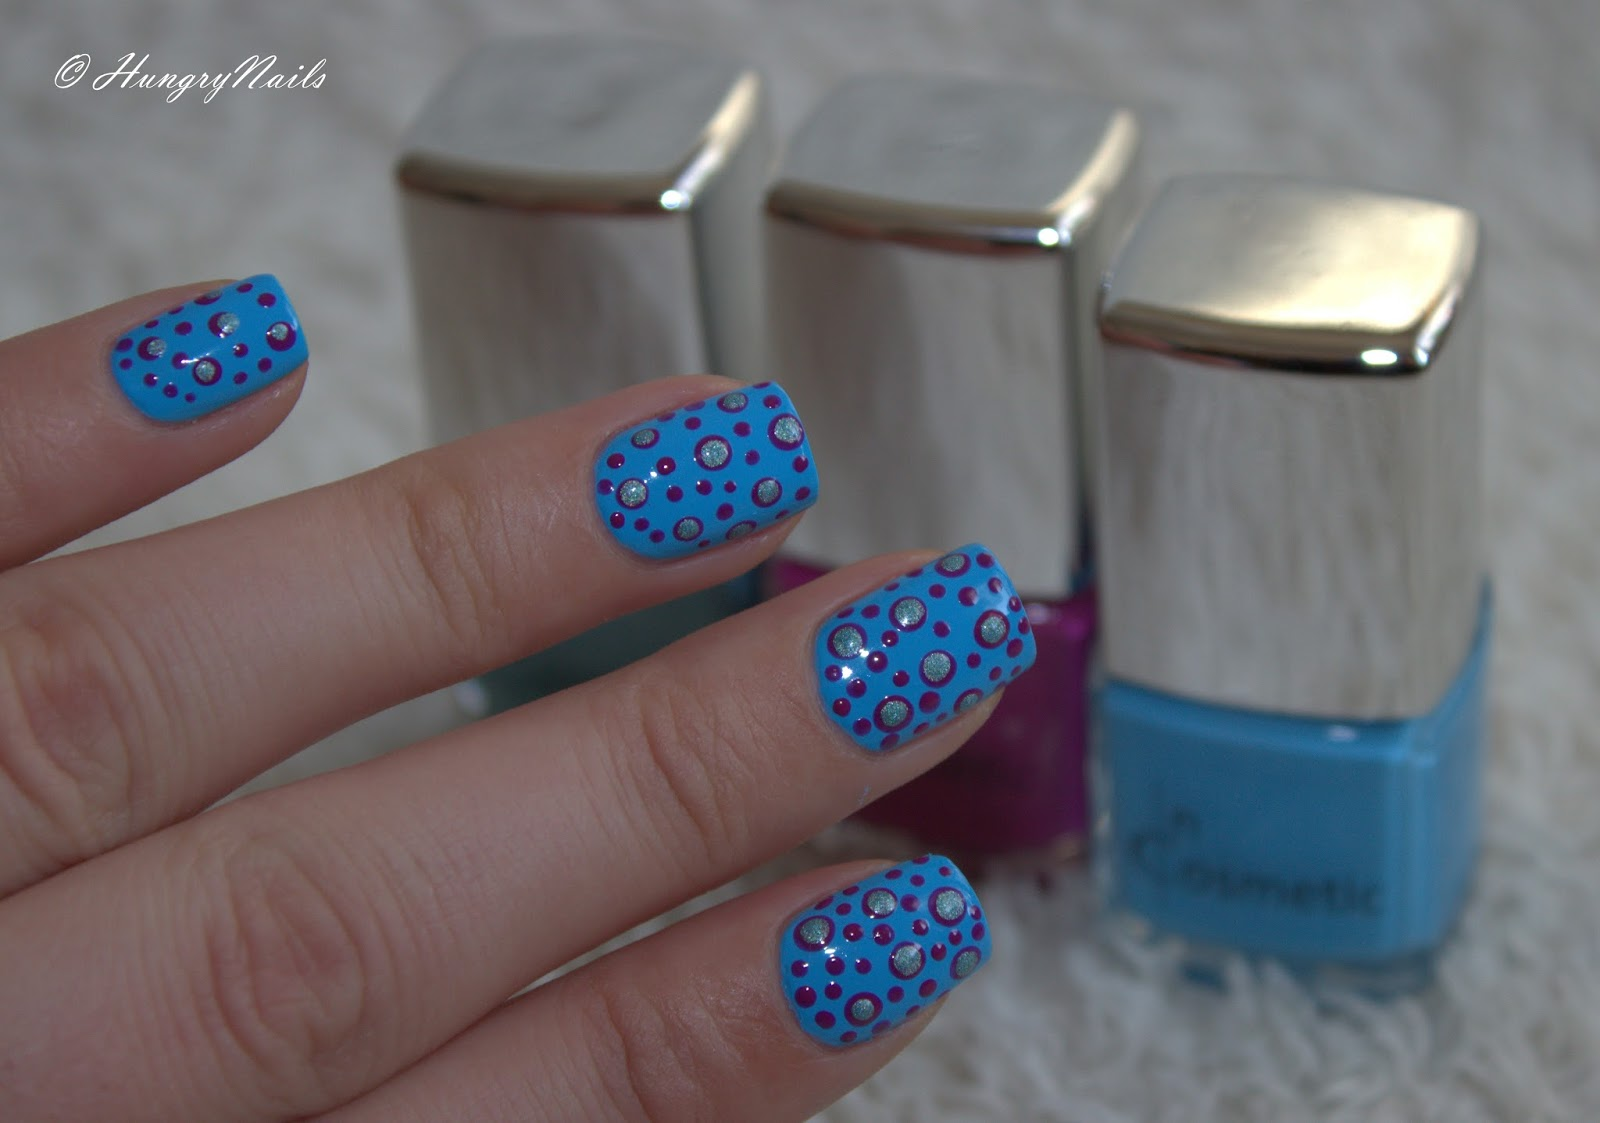 http://hungrynails.blogspot.com/2015/02/swatch-party-nagellacke-von-in-cosmetic.html